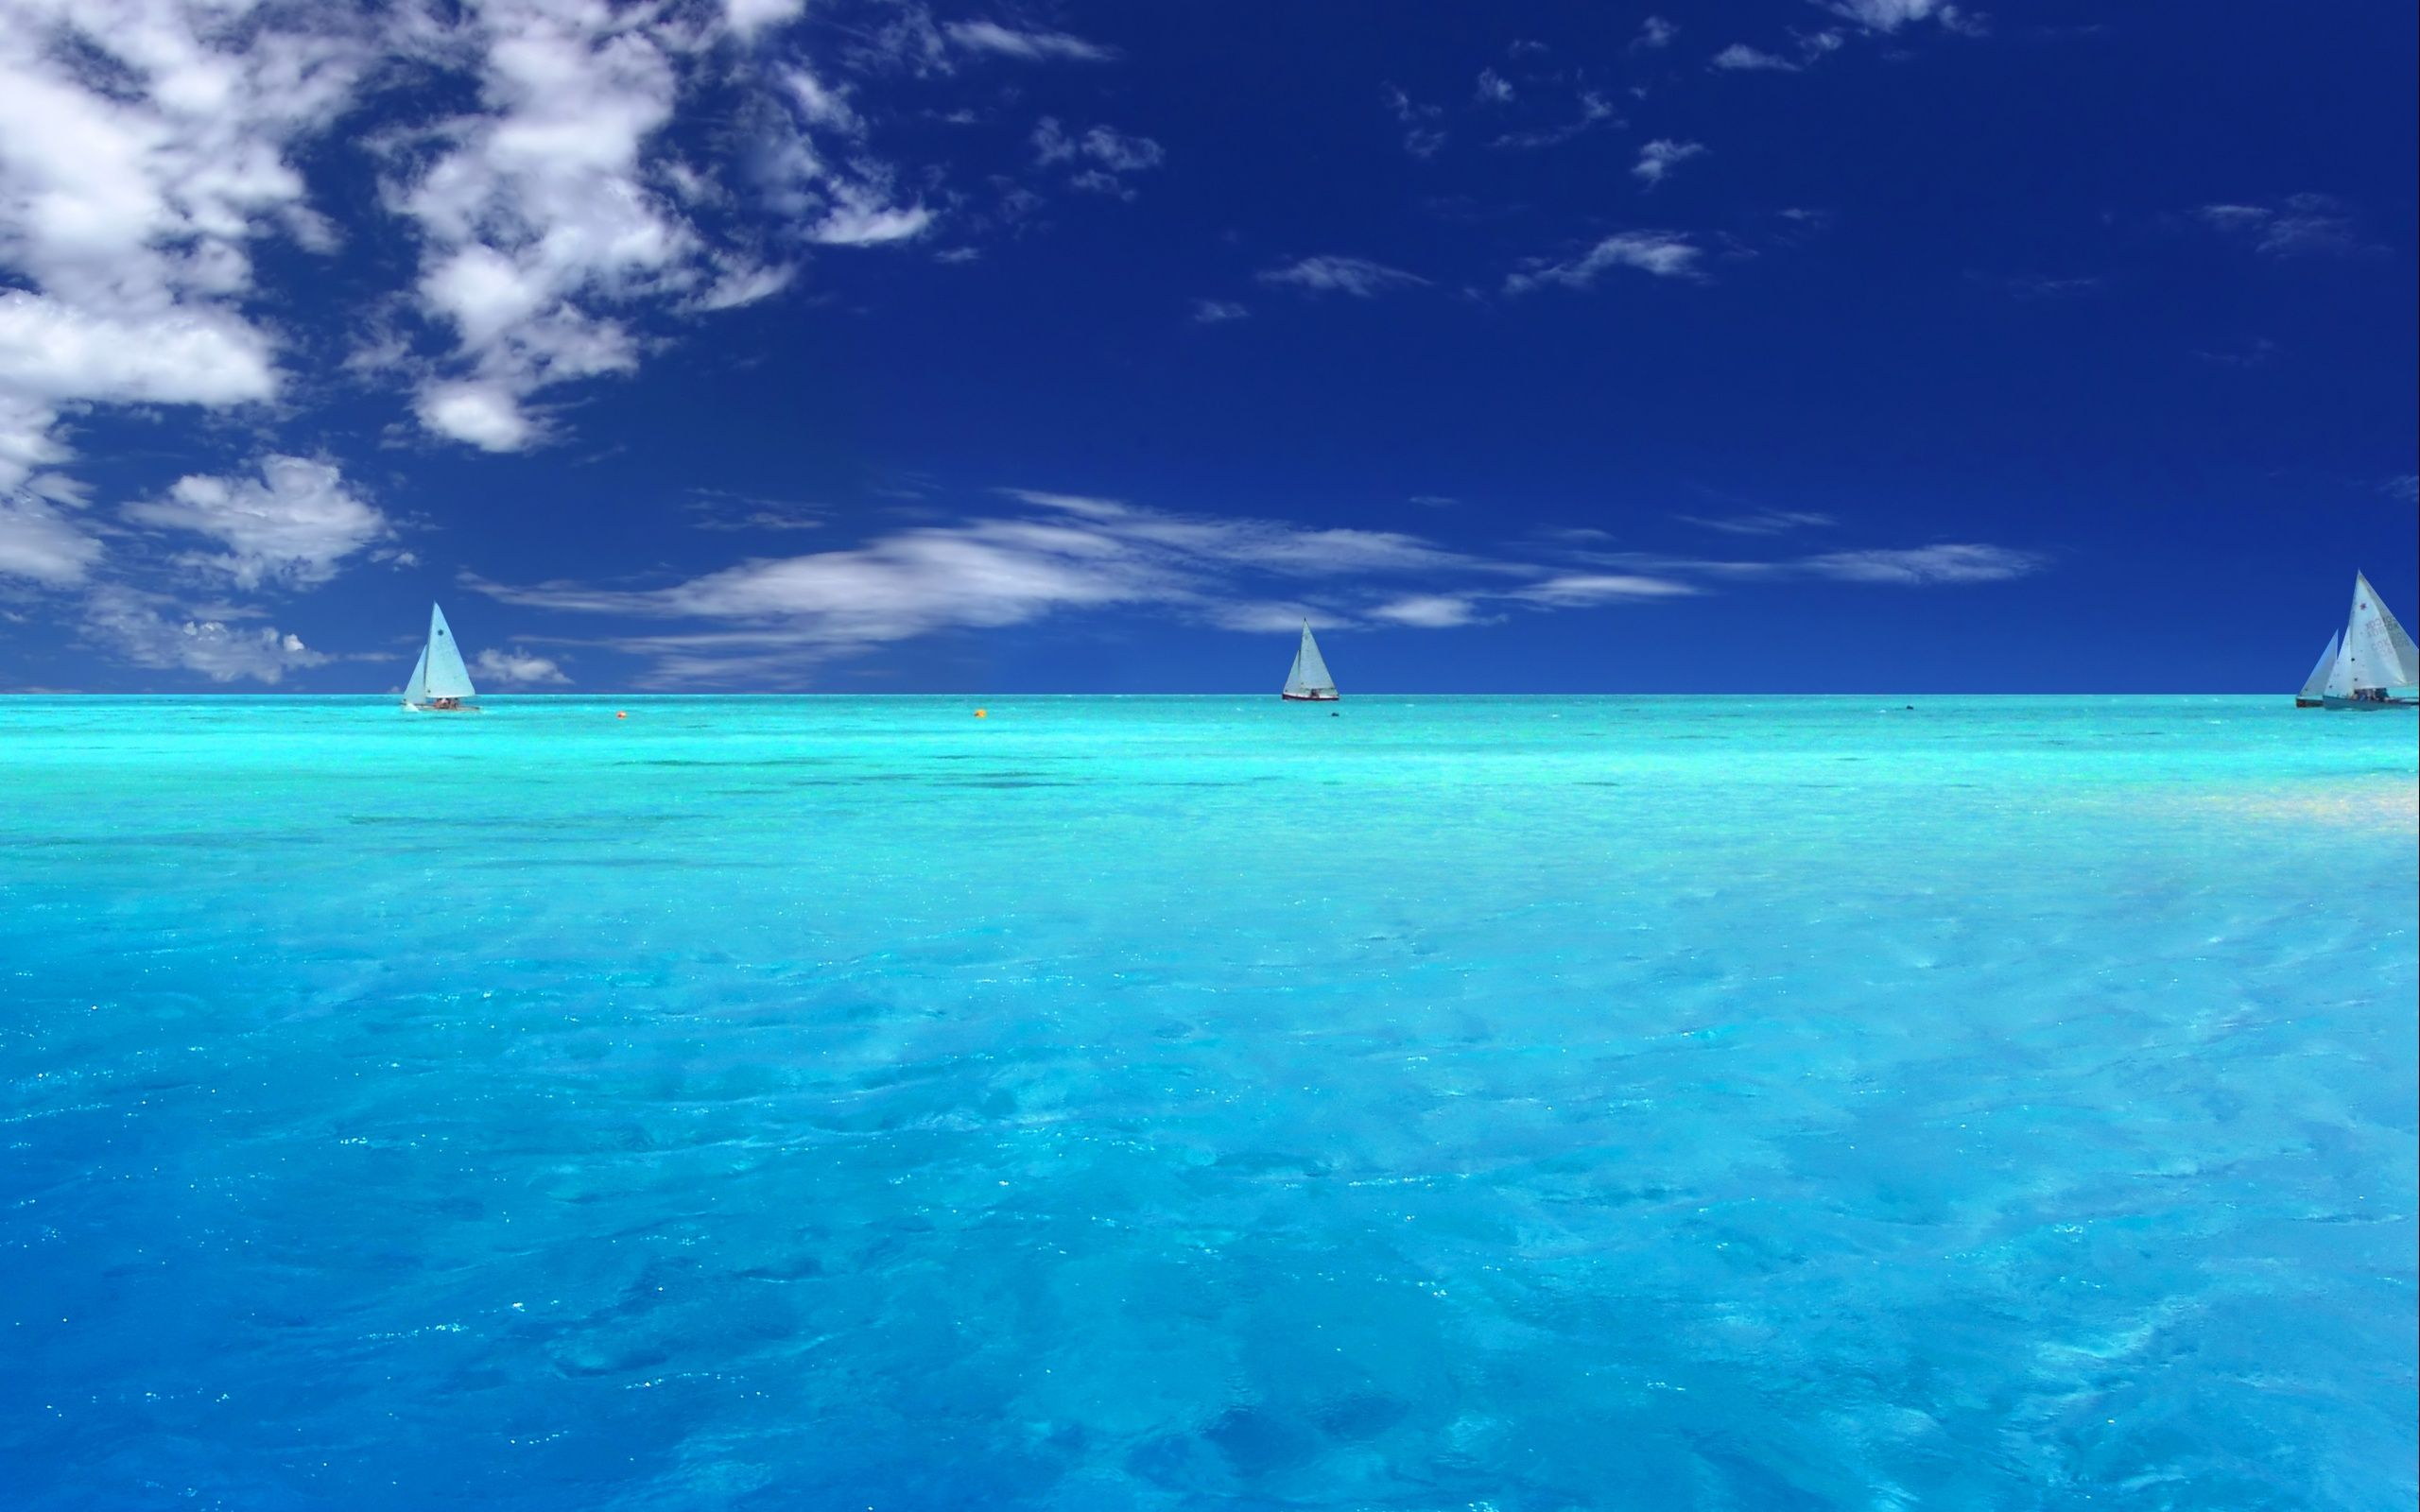 boats on clear ocean and blue sky hd wallpaper123 | 11123123